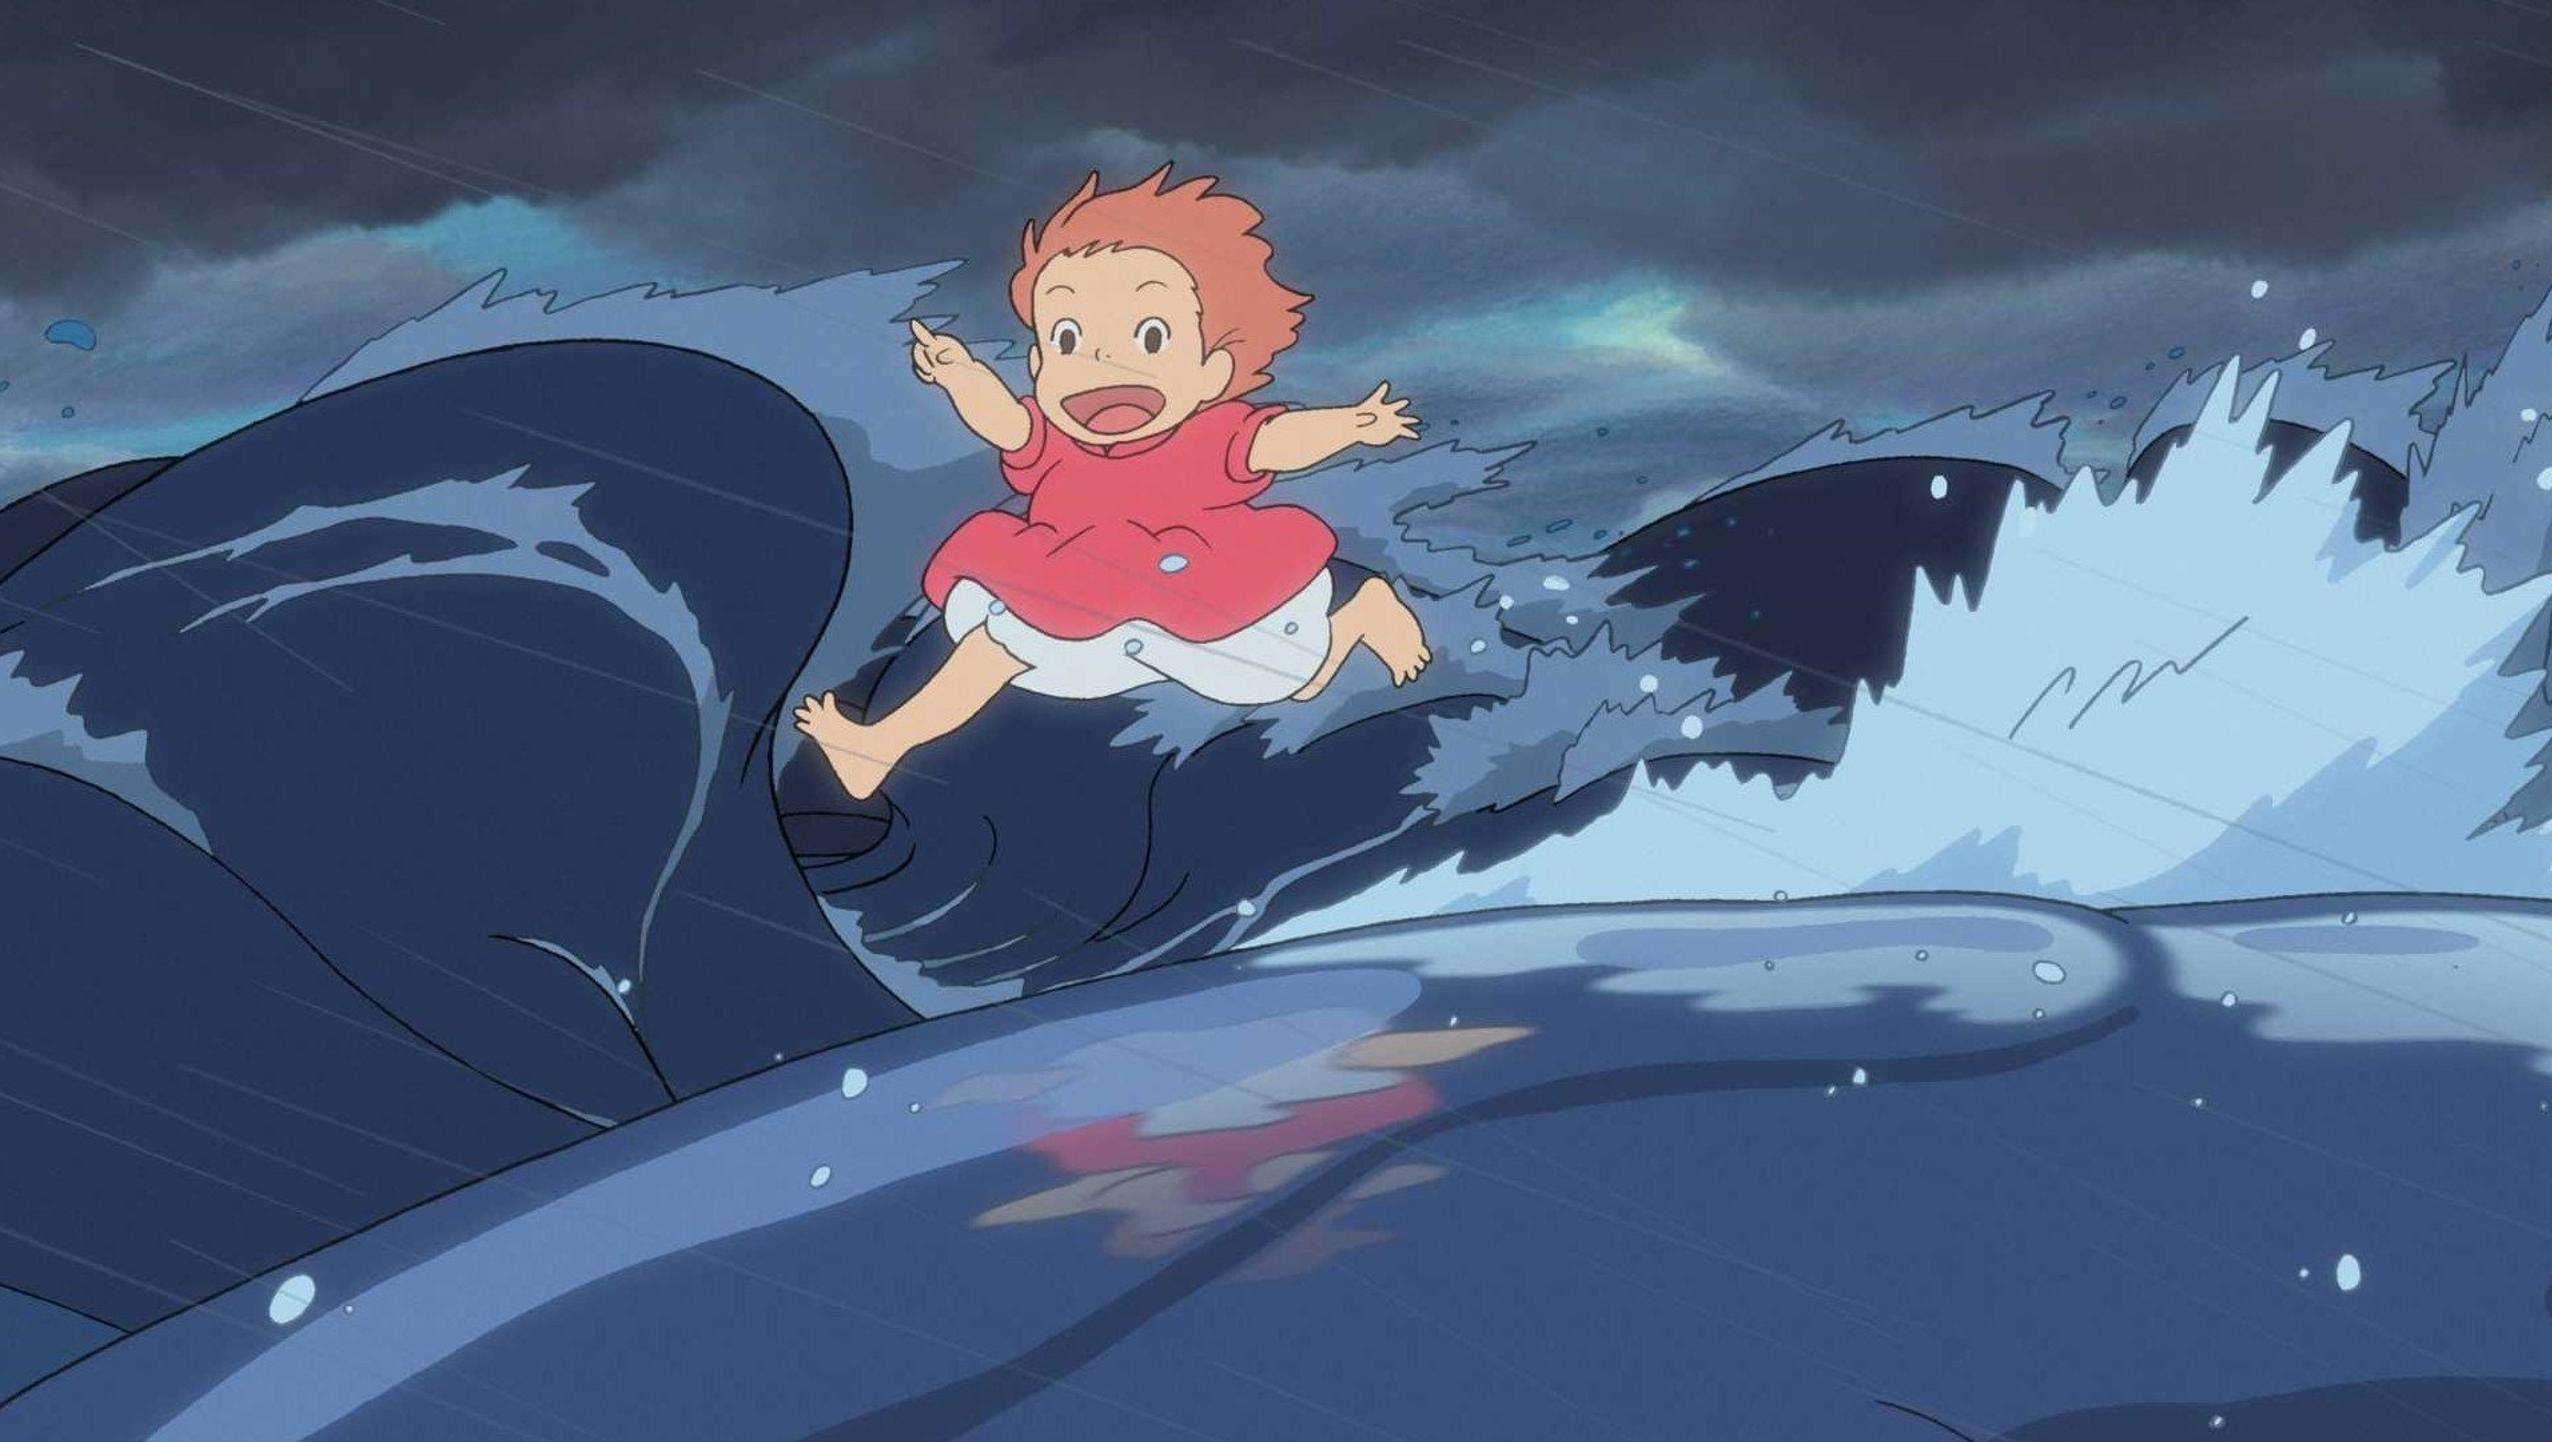 Ponyo runs across the waves in Ponyo on a Cliff By the Sea (2008)